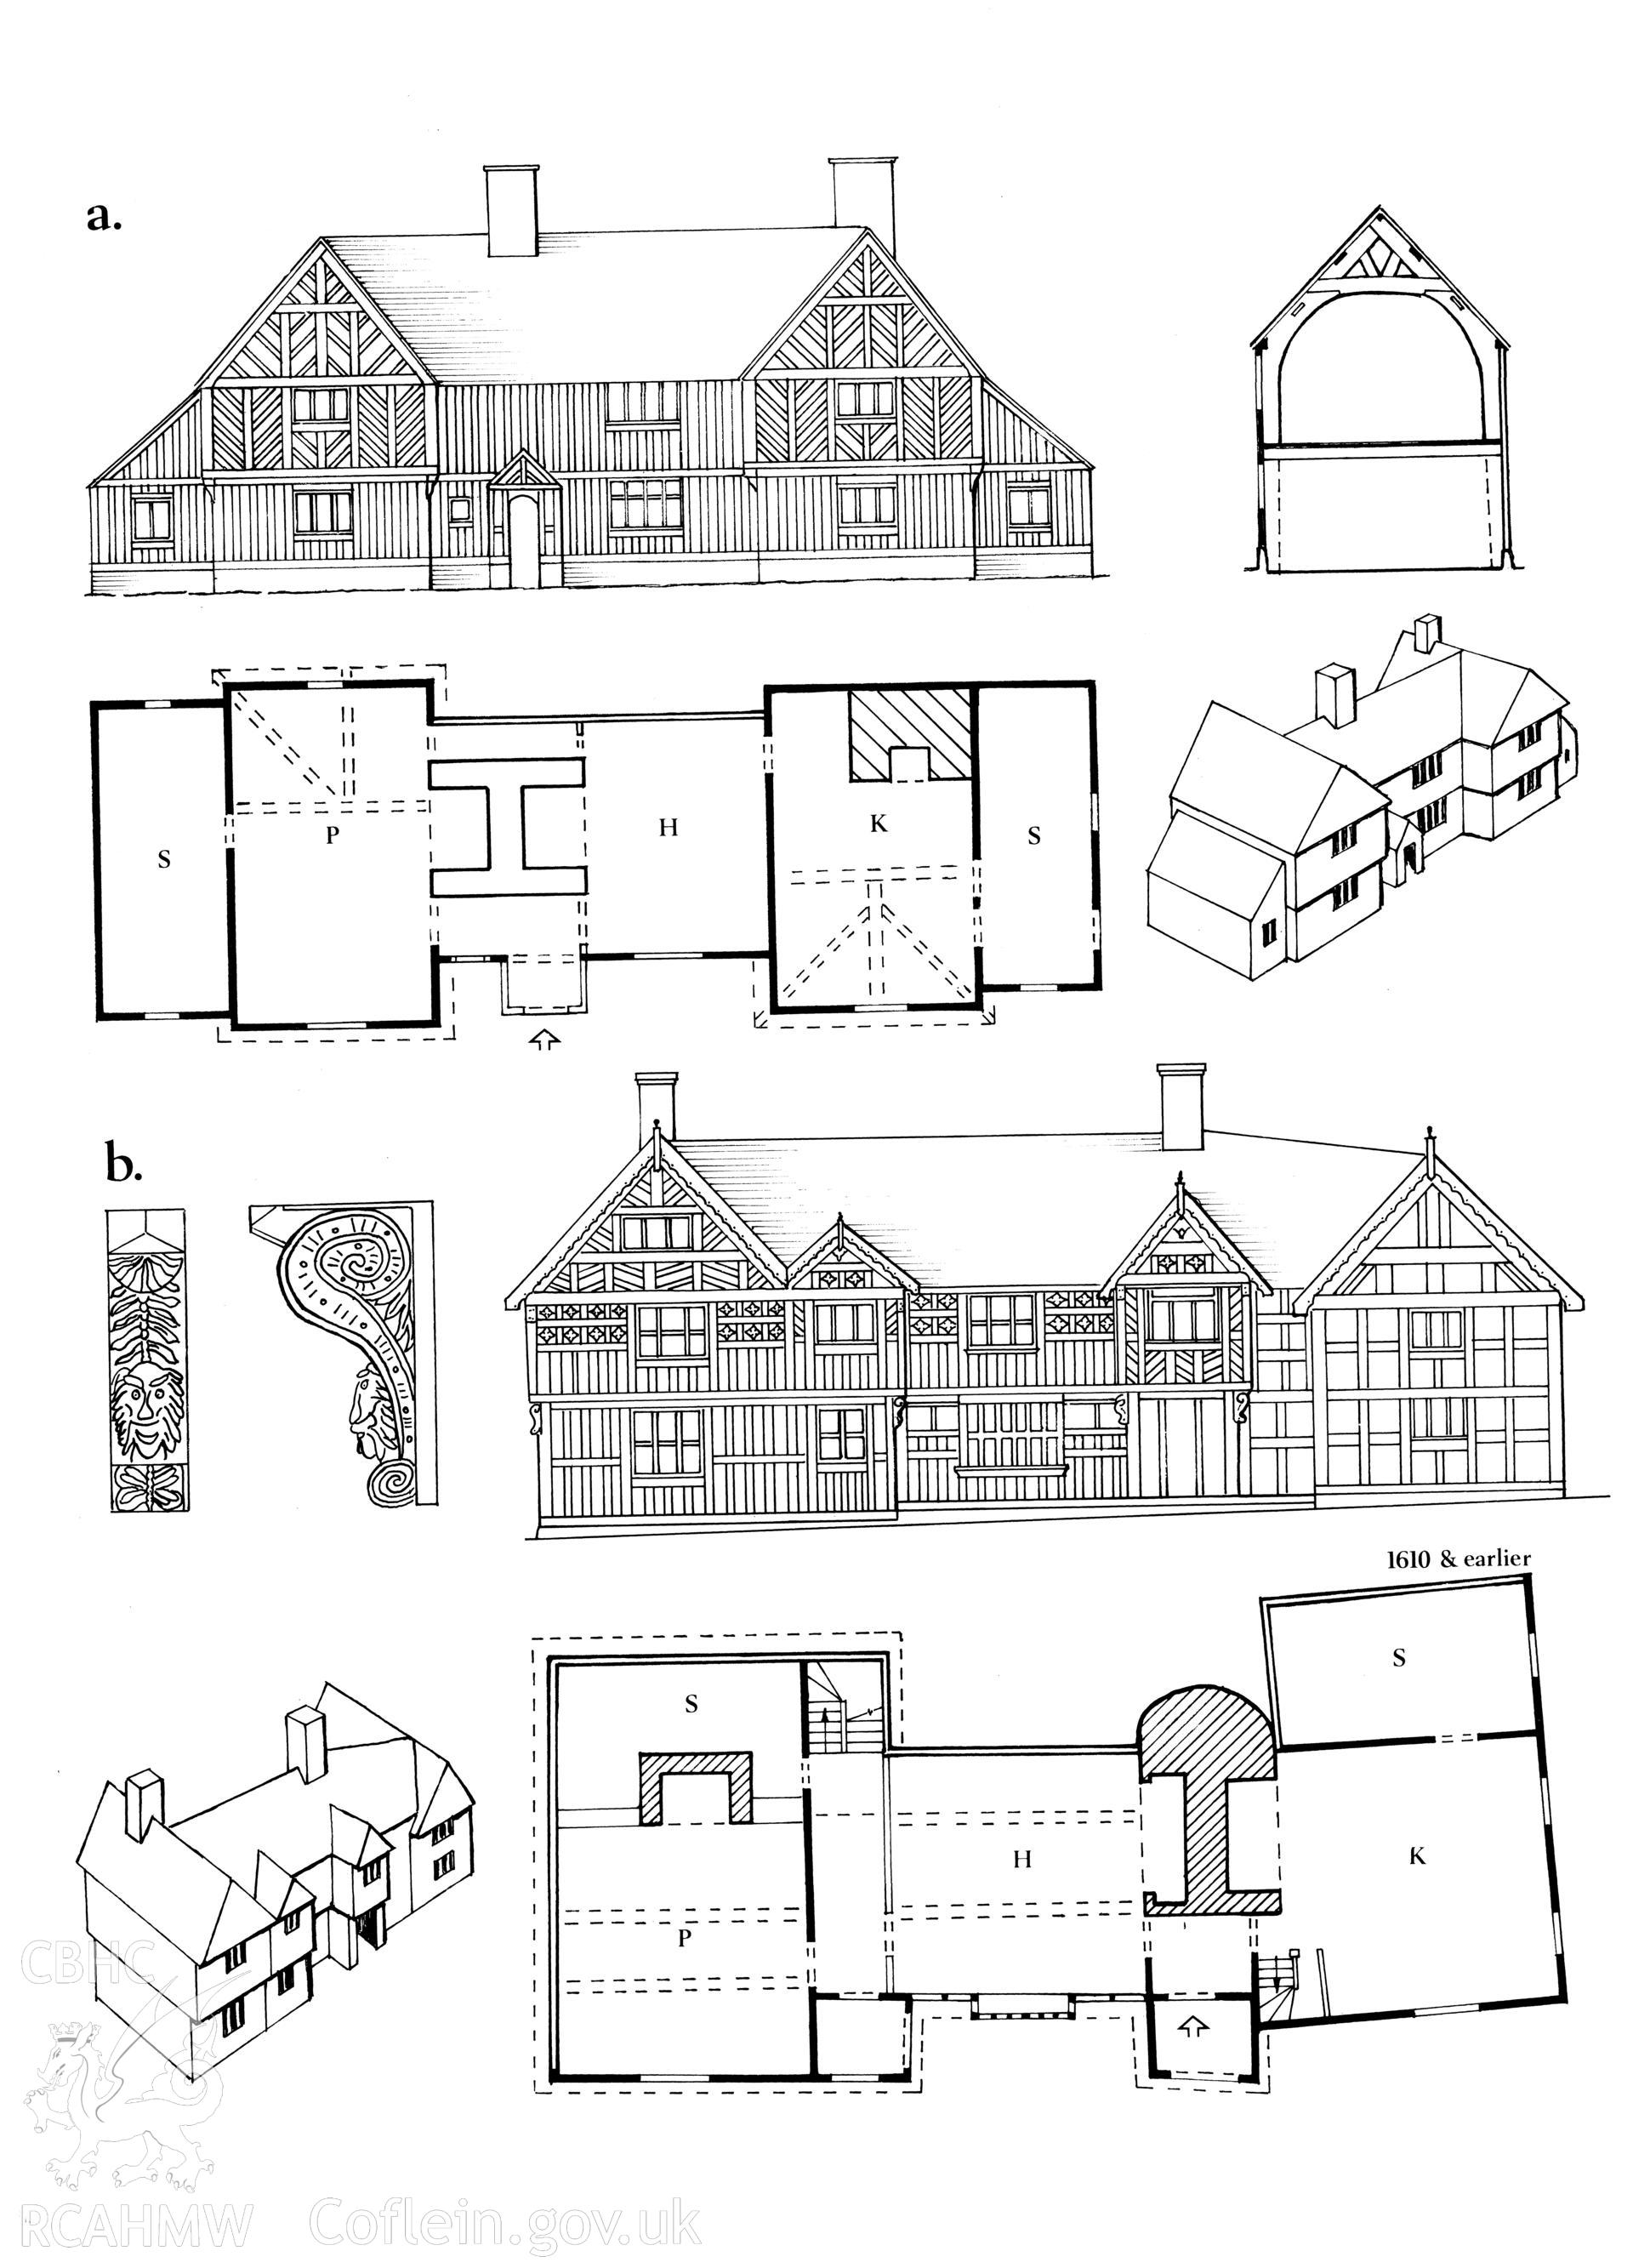 Multi site RCAHMW drawing, 2 sites, showing plan, elevation and detail of Trewern Hall and Penarth, Newtown. Published in Houses of the Welsh Countryside, fig 124.